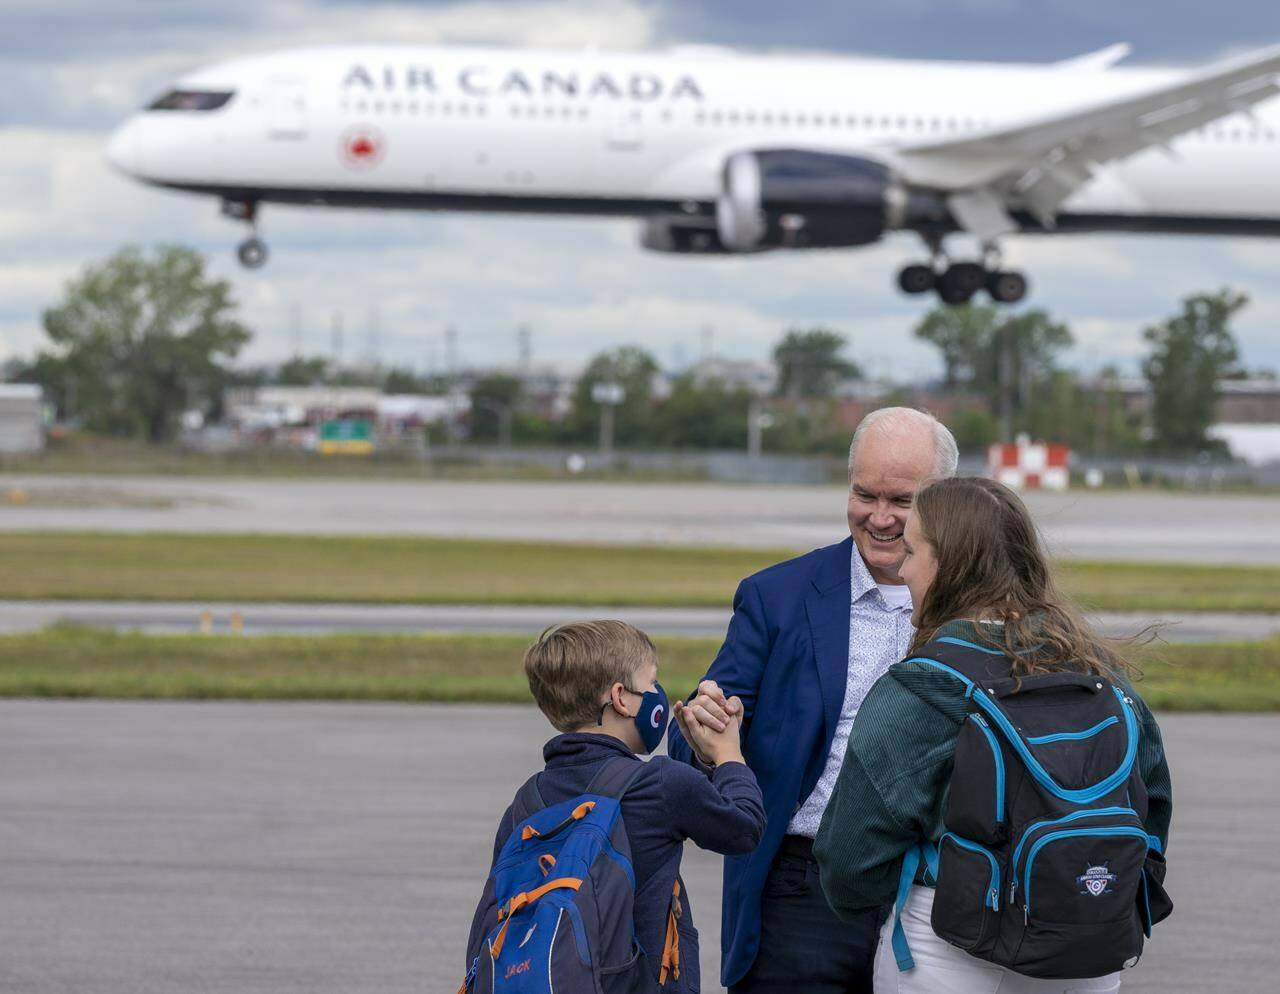 Conservative Leader Erin O'Toole greets his children Jack and Mollie on the tarmac in Montreal on Friday, September 3, 2021. Canadians will vote in a federal election Sept. 20th. THE CANADIAN PRESS/Frank Gunn